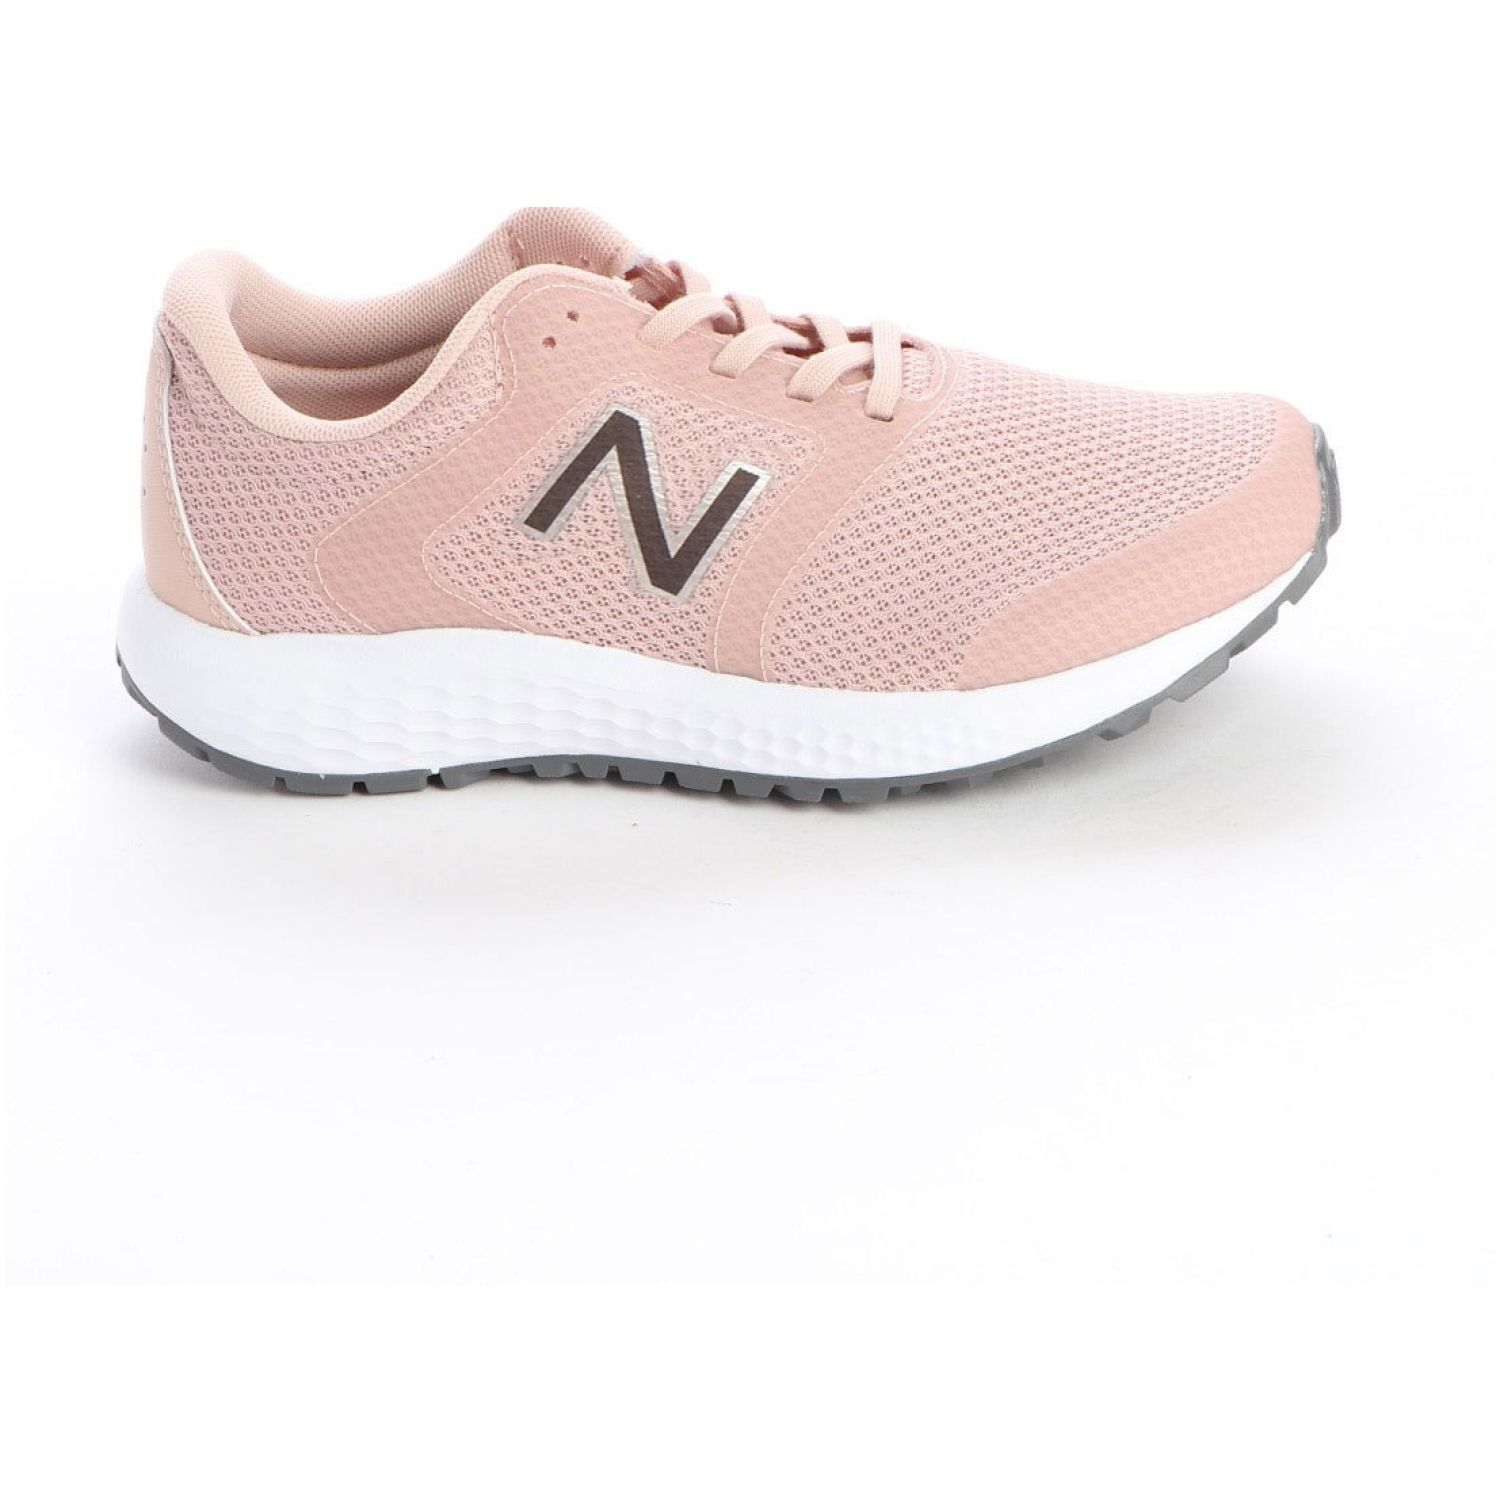 New Balance 420 Rosado / blanco Trail Running